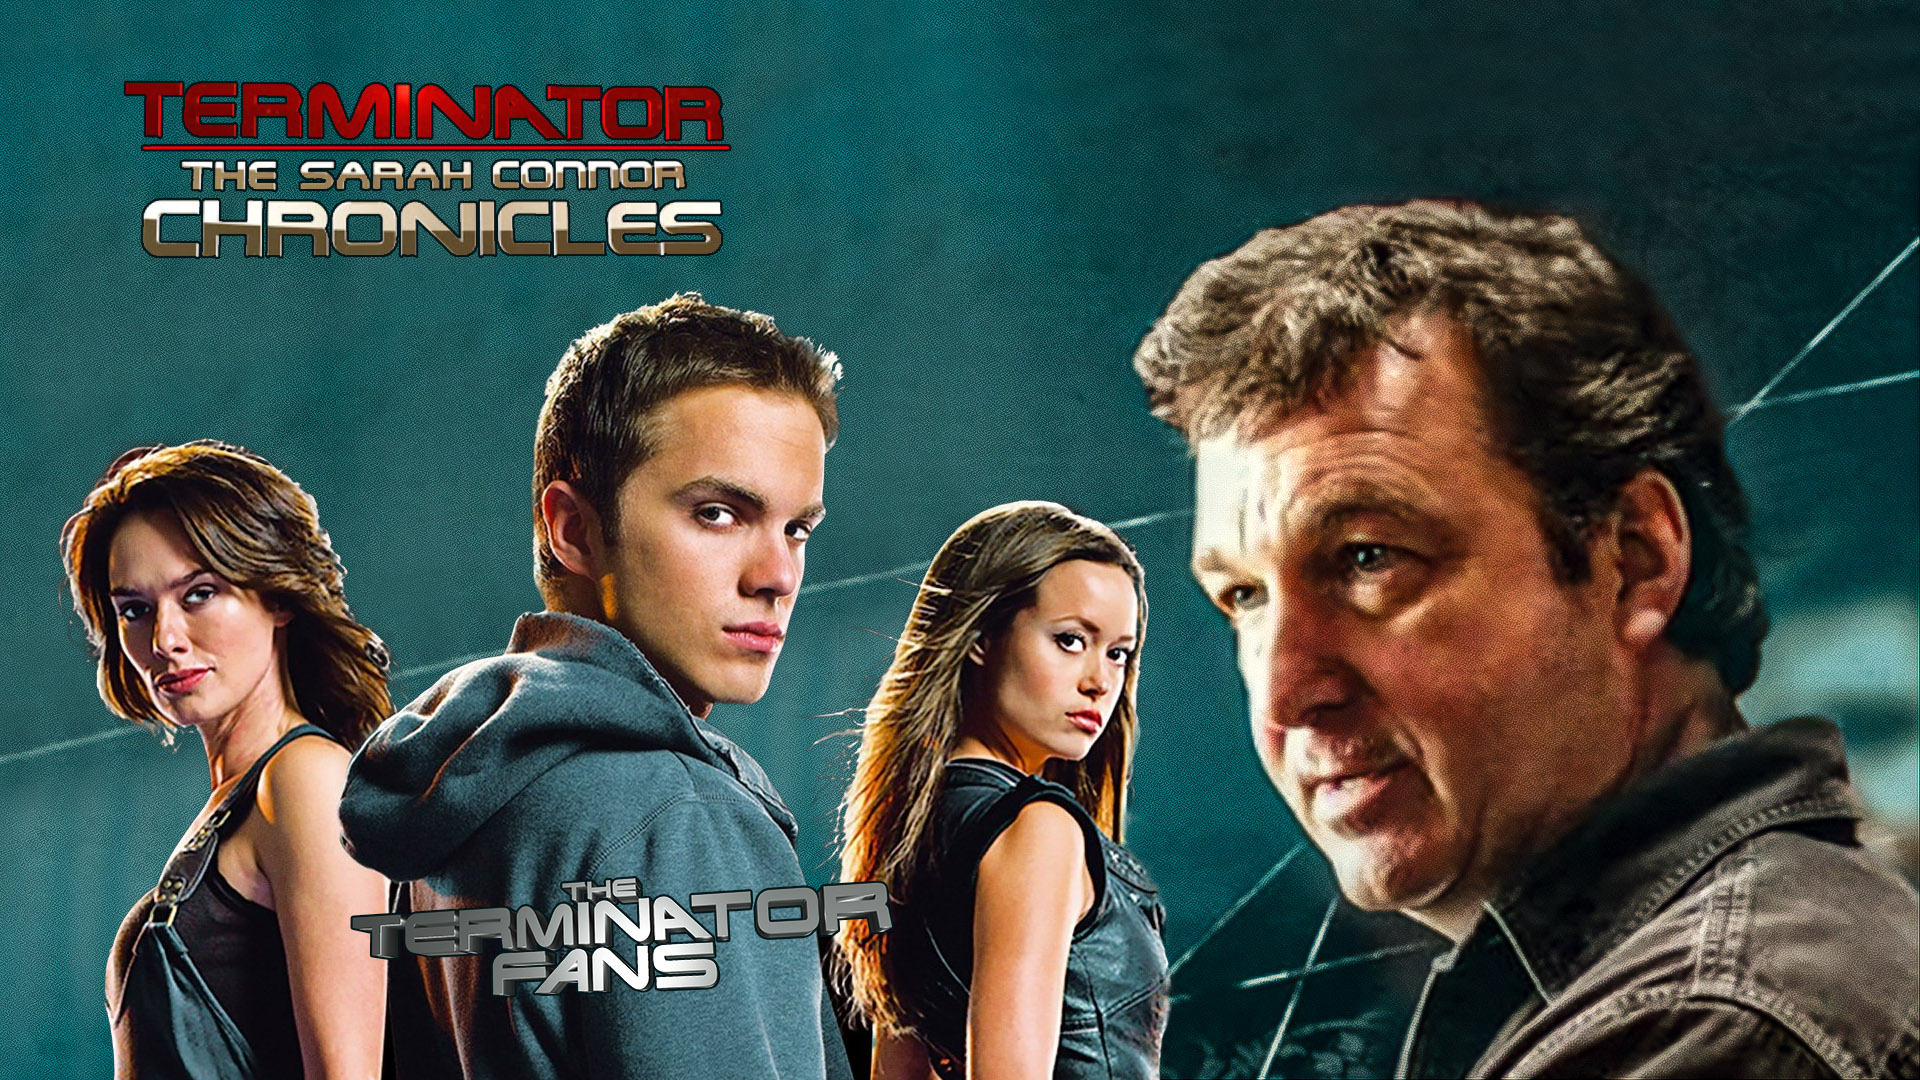 Terminator: The Sarah Connor Chronicles Director Charles Beeson Dies